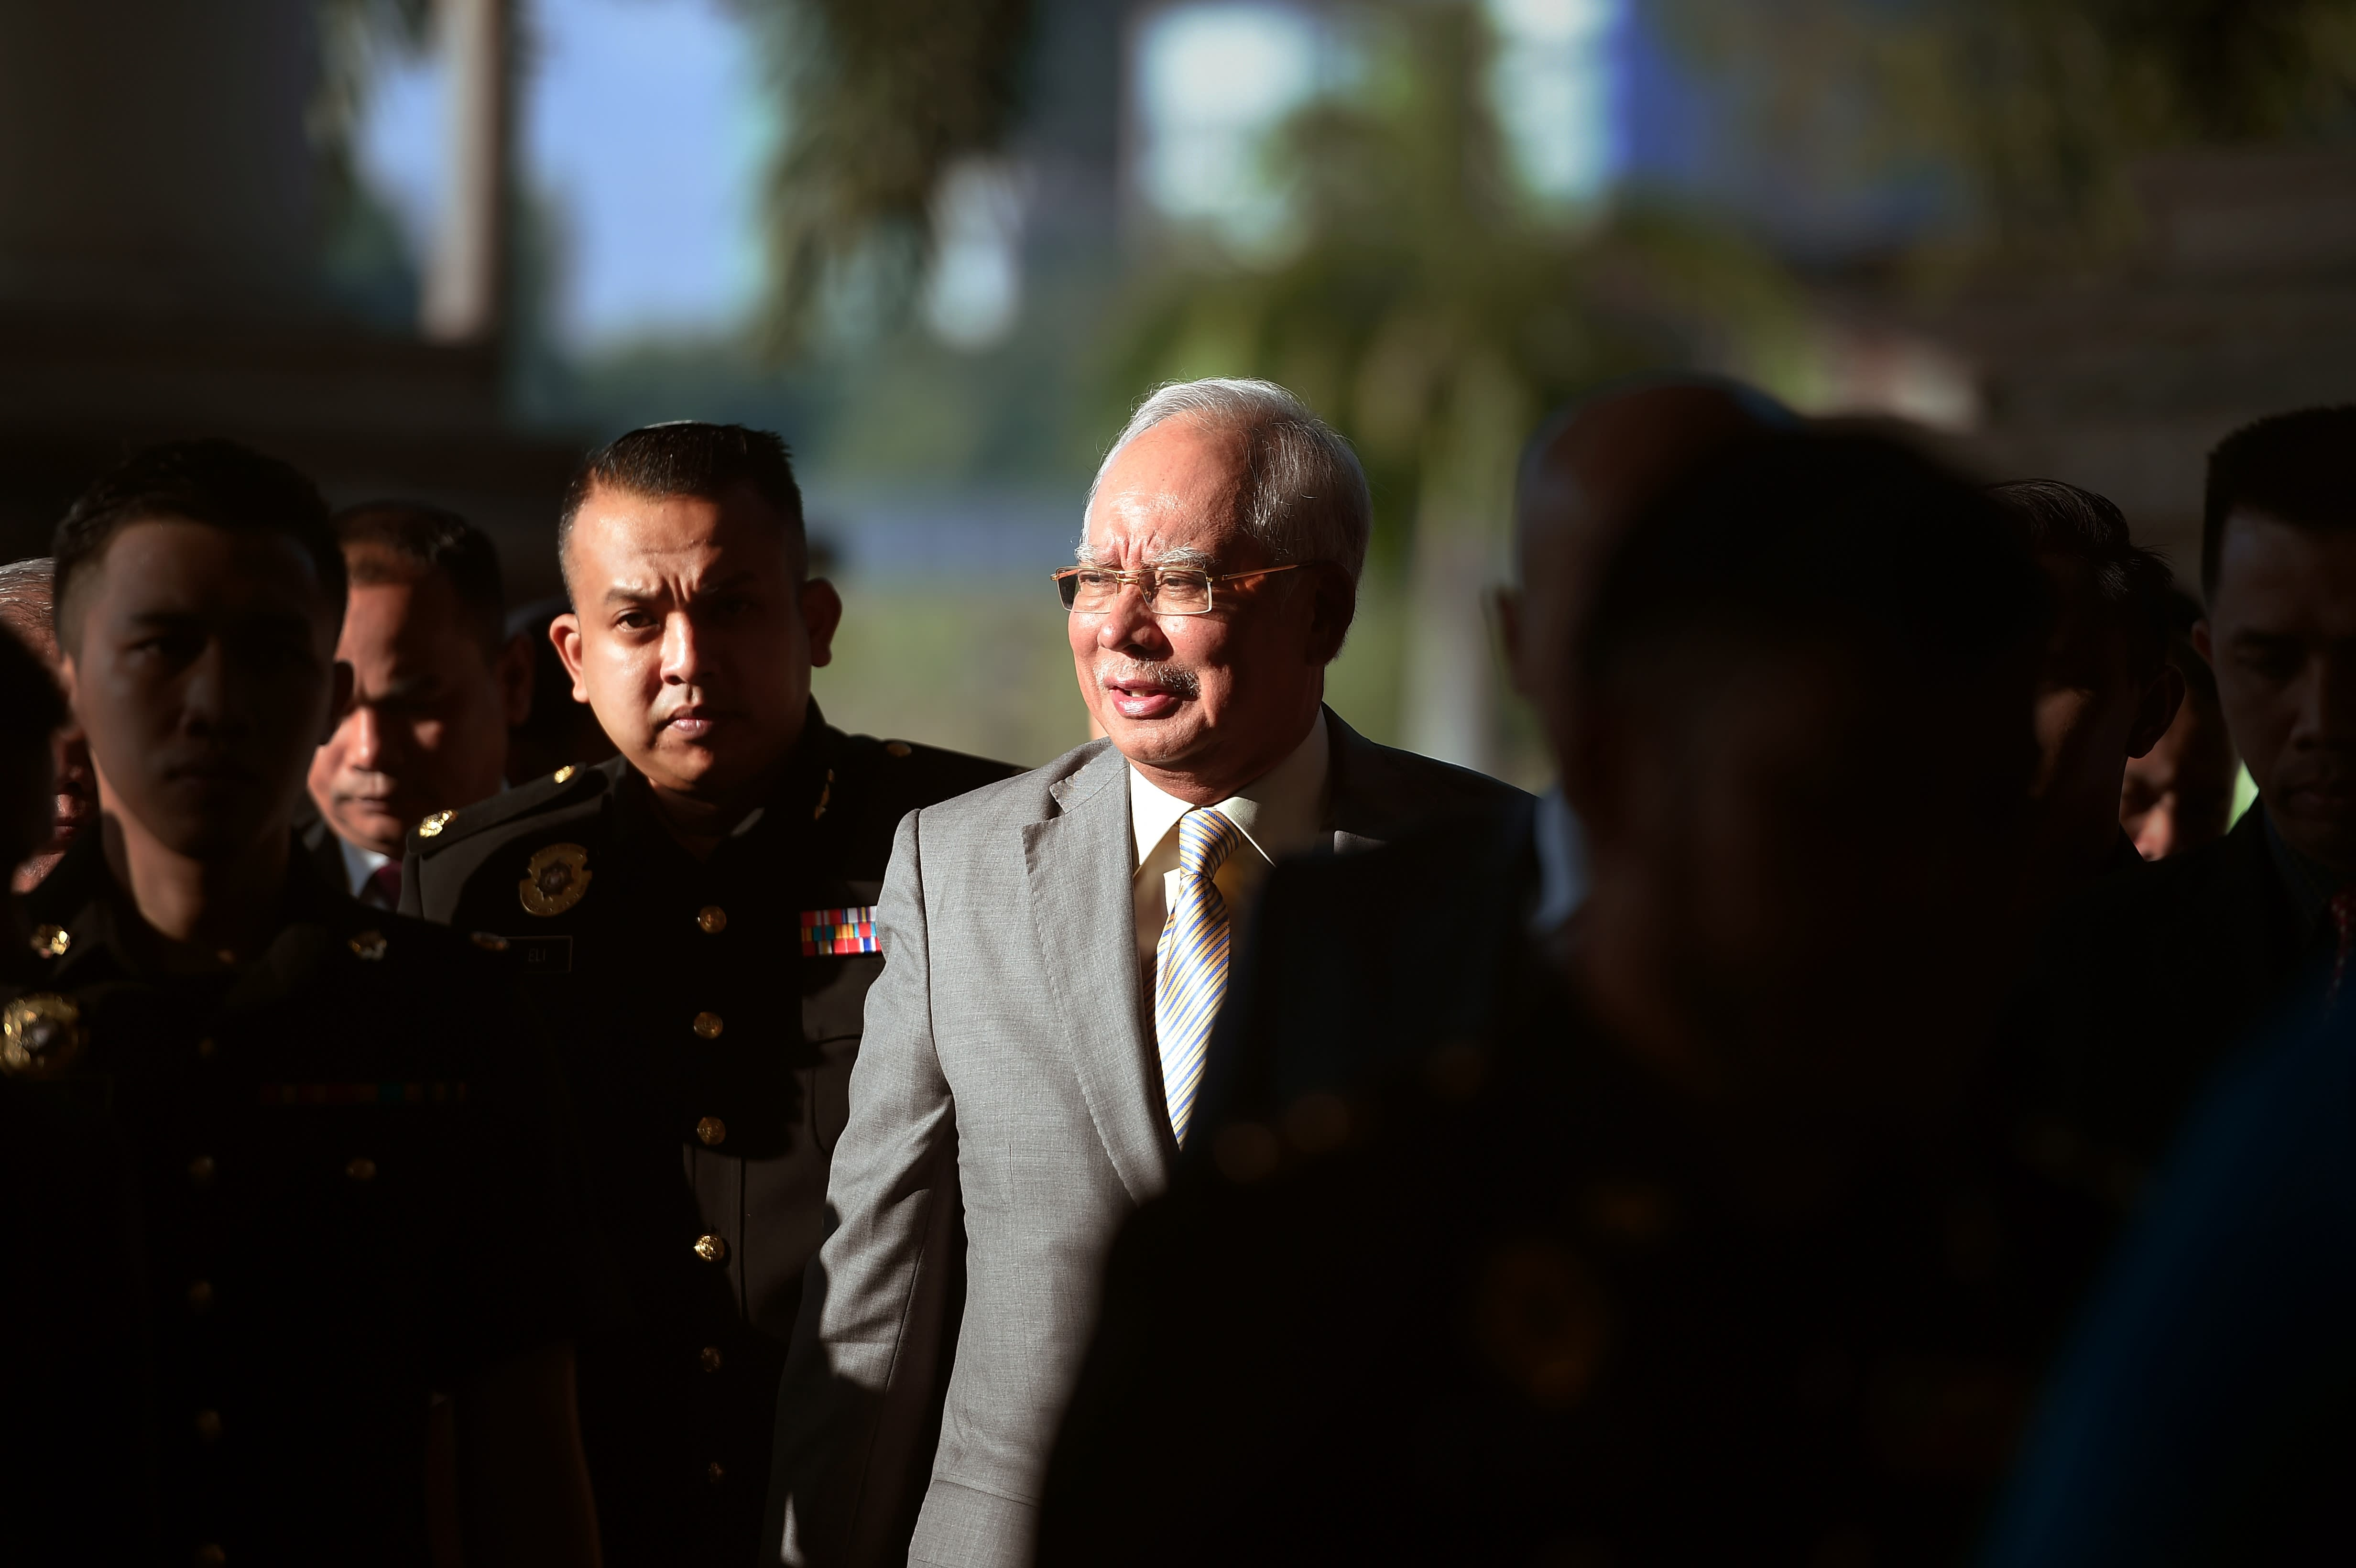 Corruption trial delay is a 'victory' for former Malaysian leader Najib Razak — but not for long, analyst says